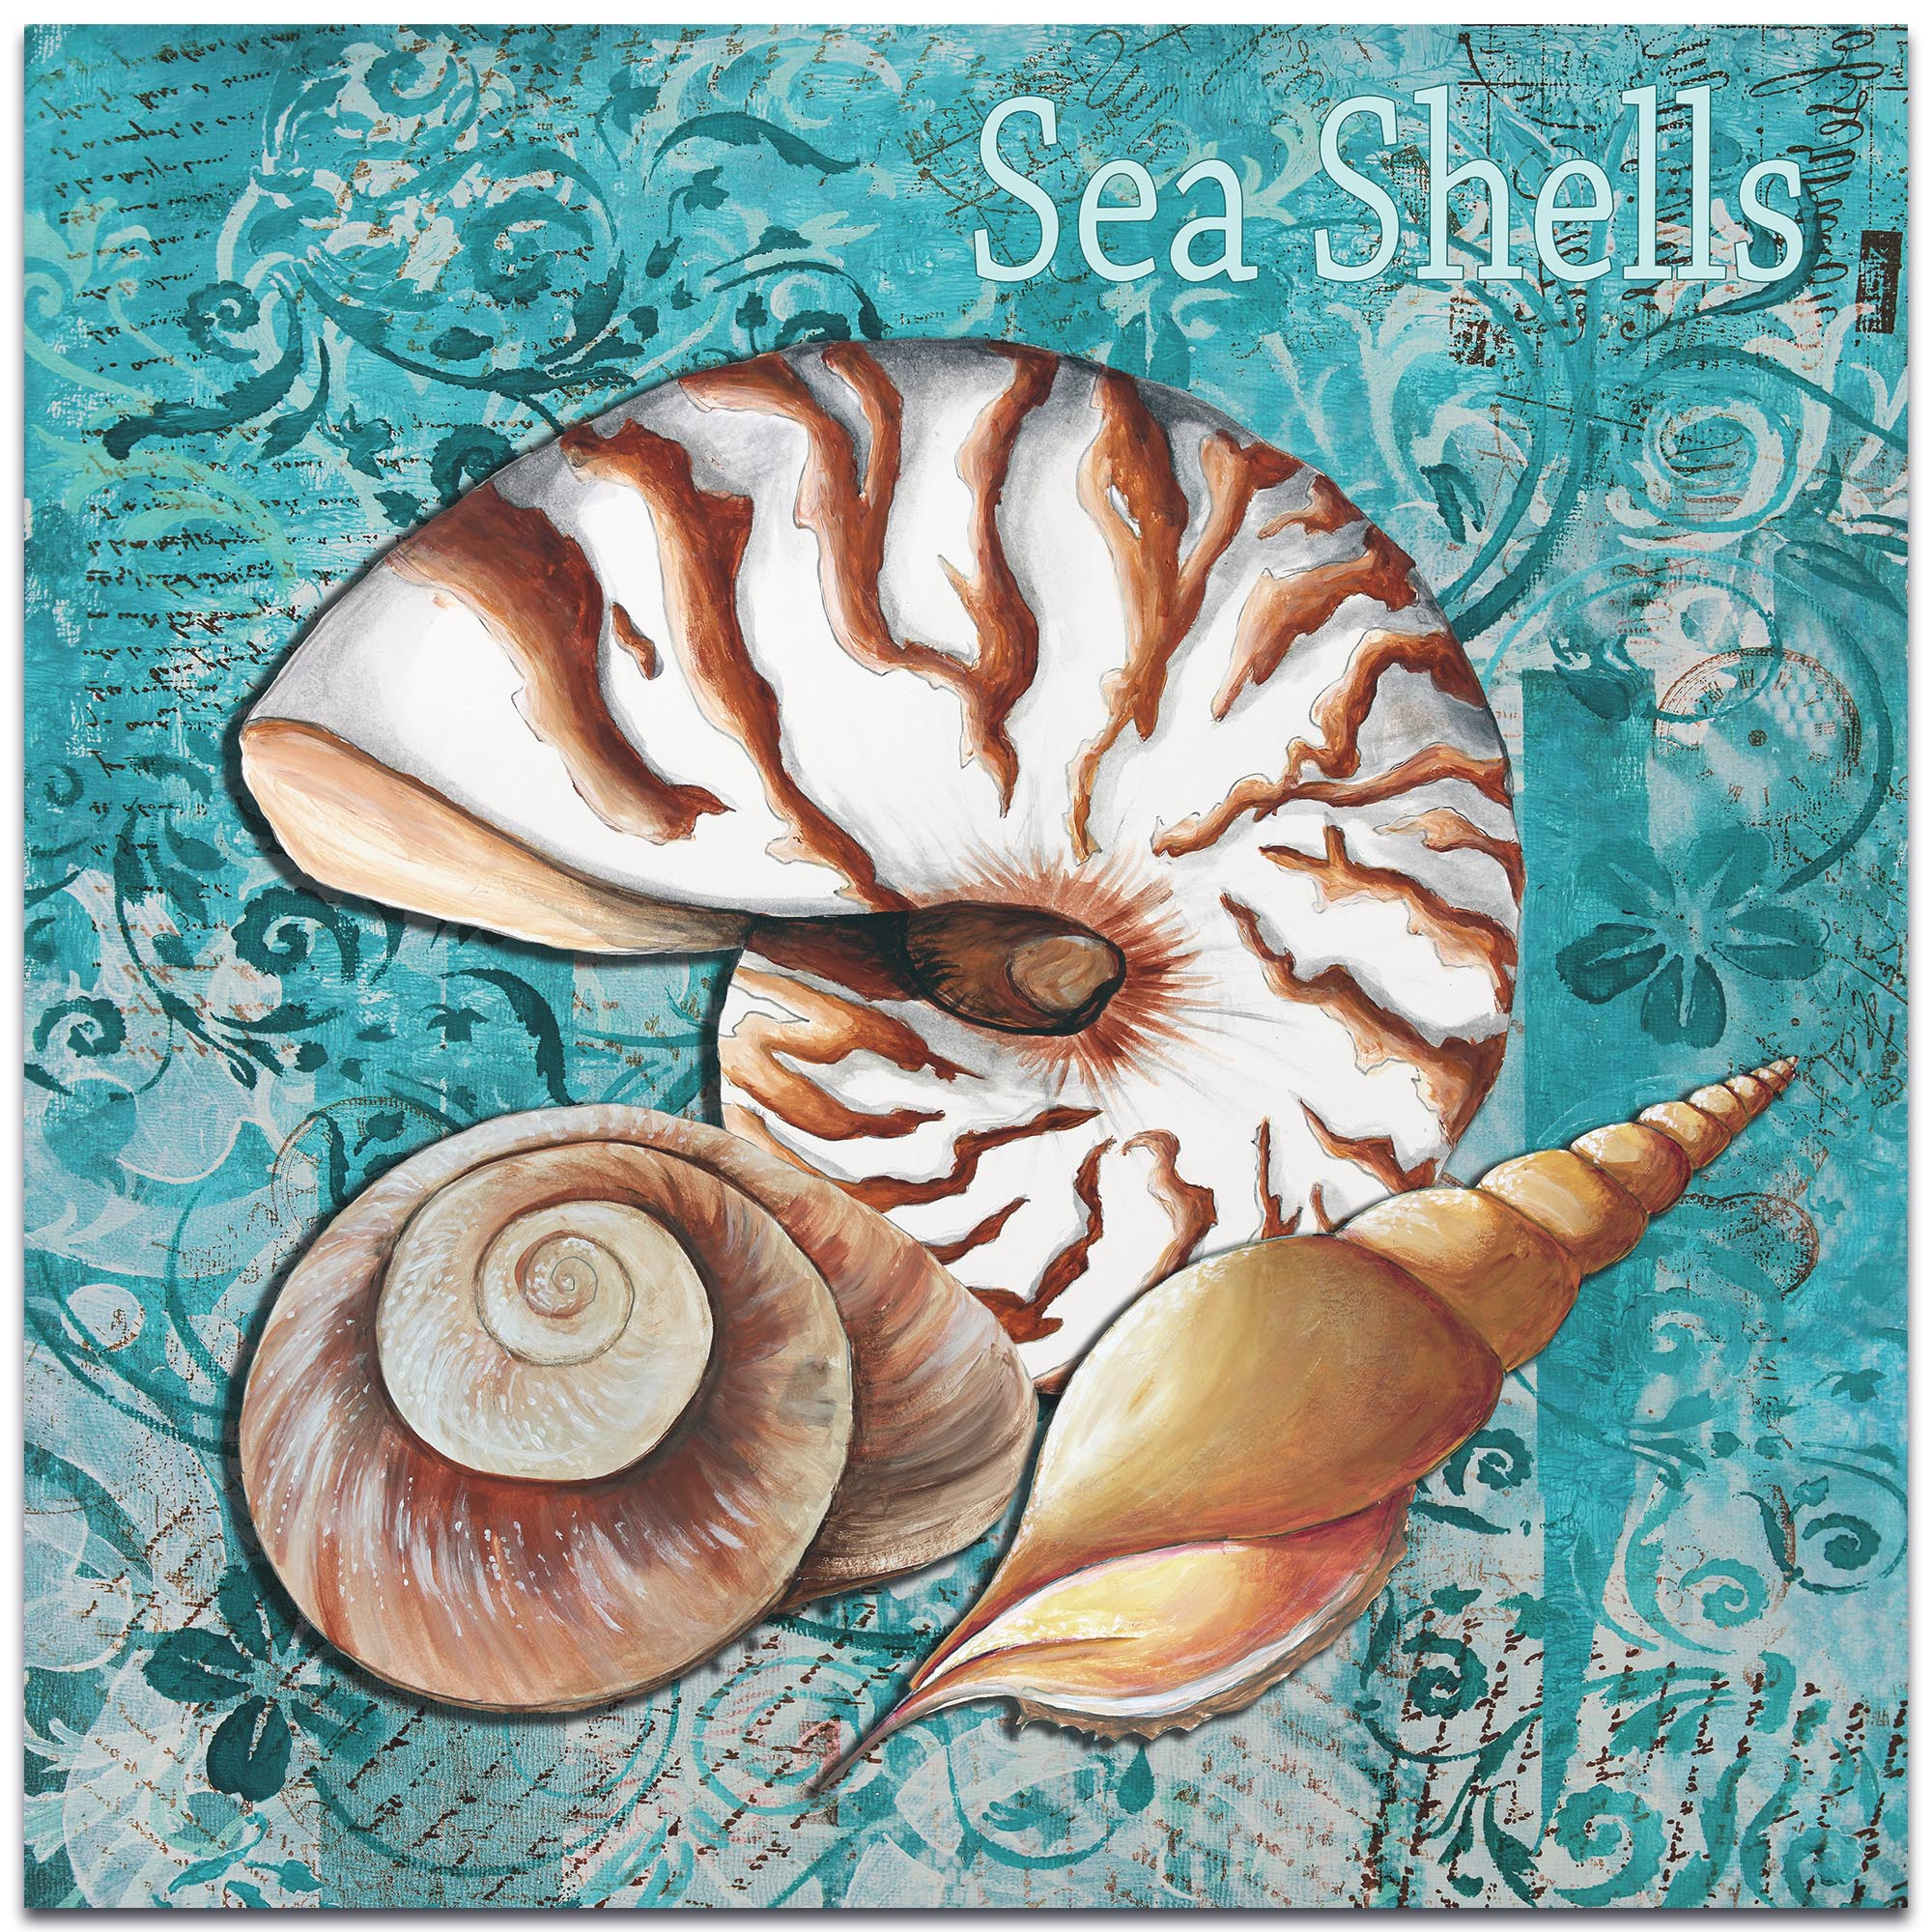 Sea Shells by Megan Duncanson - Beach Decor on Metal or Acrylic